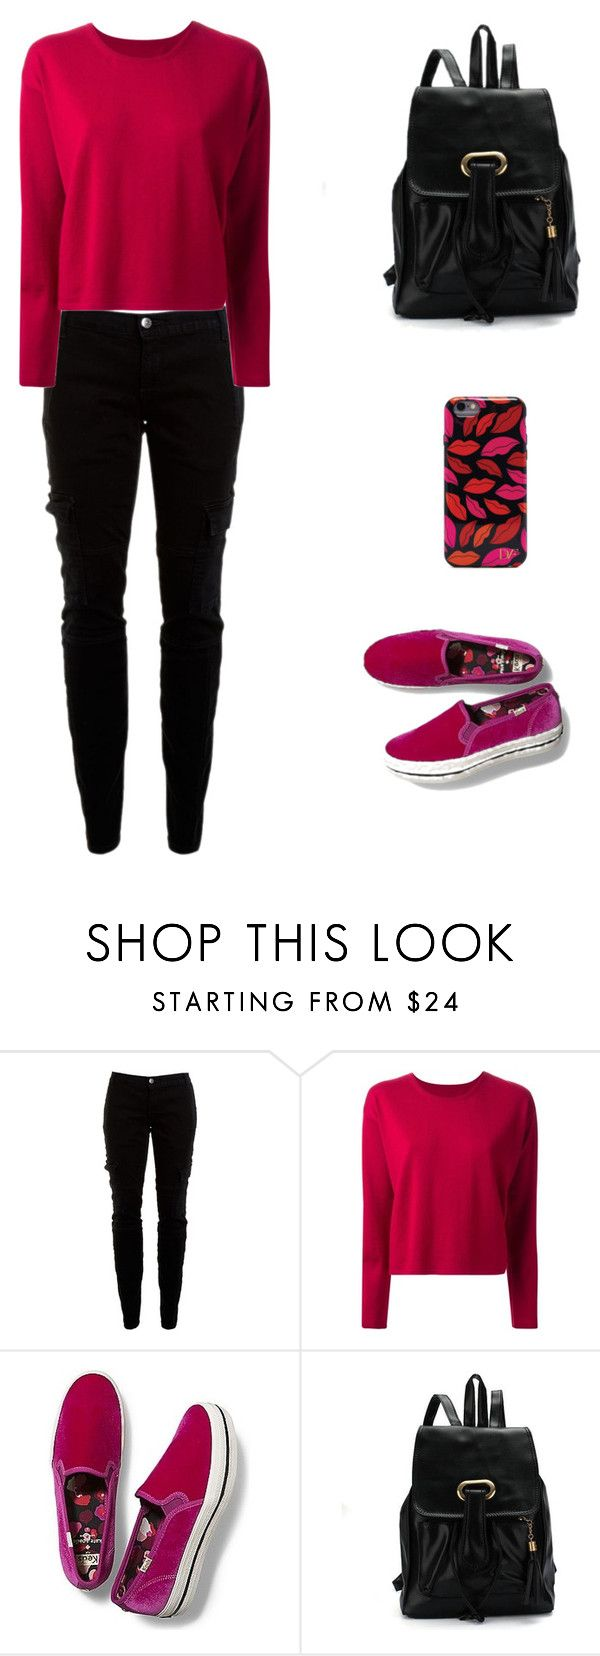 """Untitled #7"" by kayandzay on Polyvore featuring Joie, MM6 Maison Margiela, Keds and Diane Von Furstenberg"